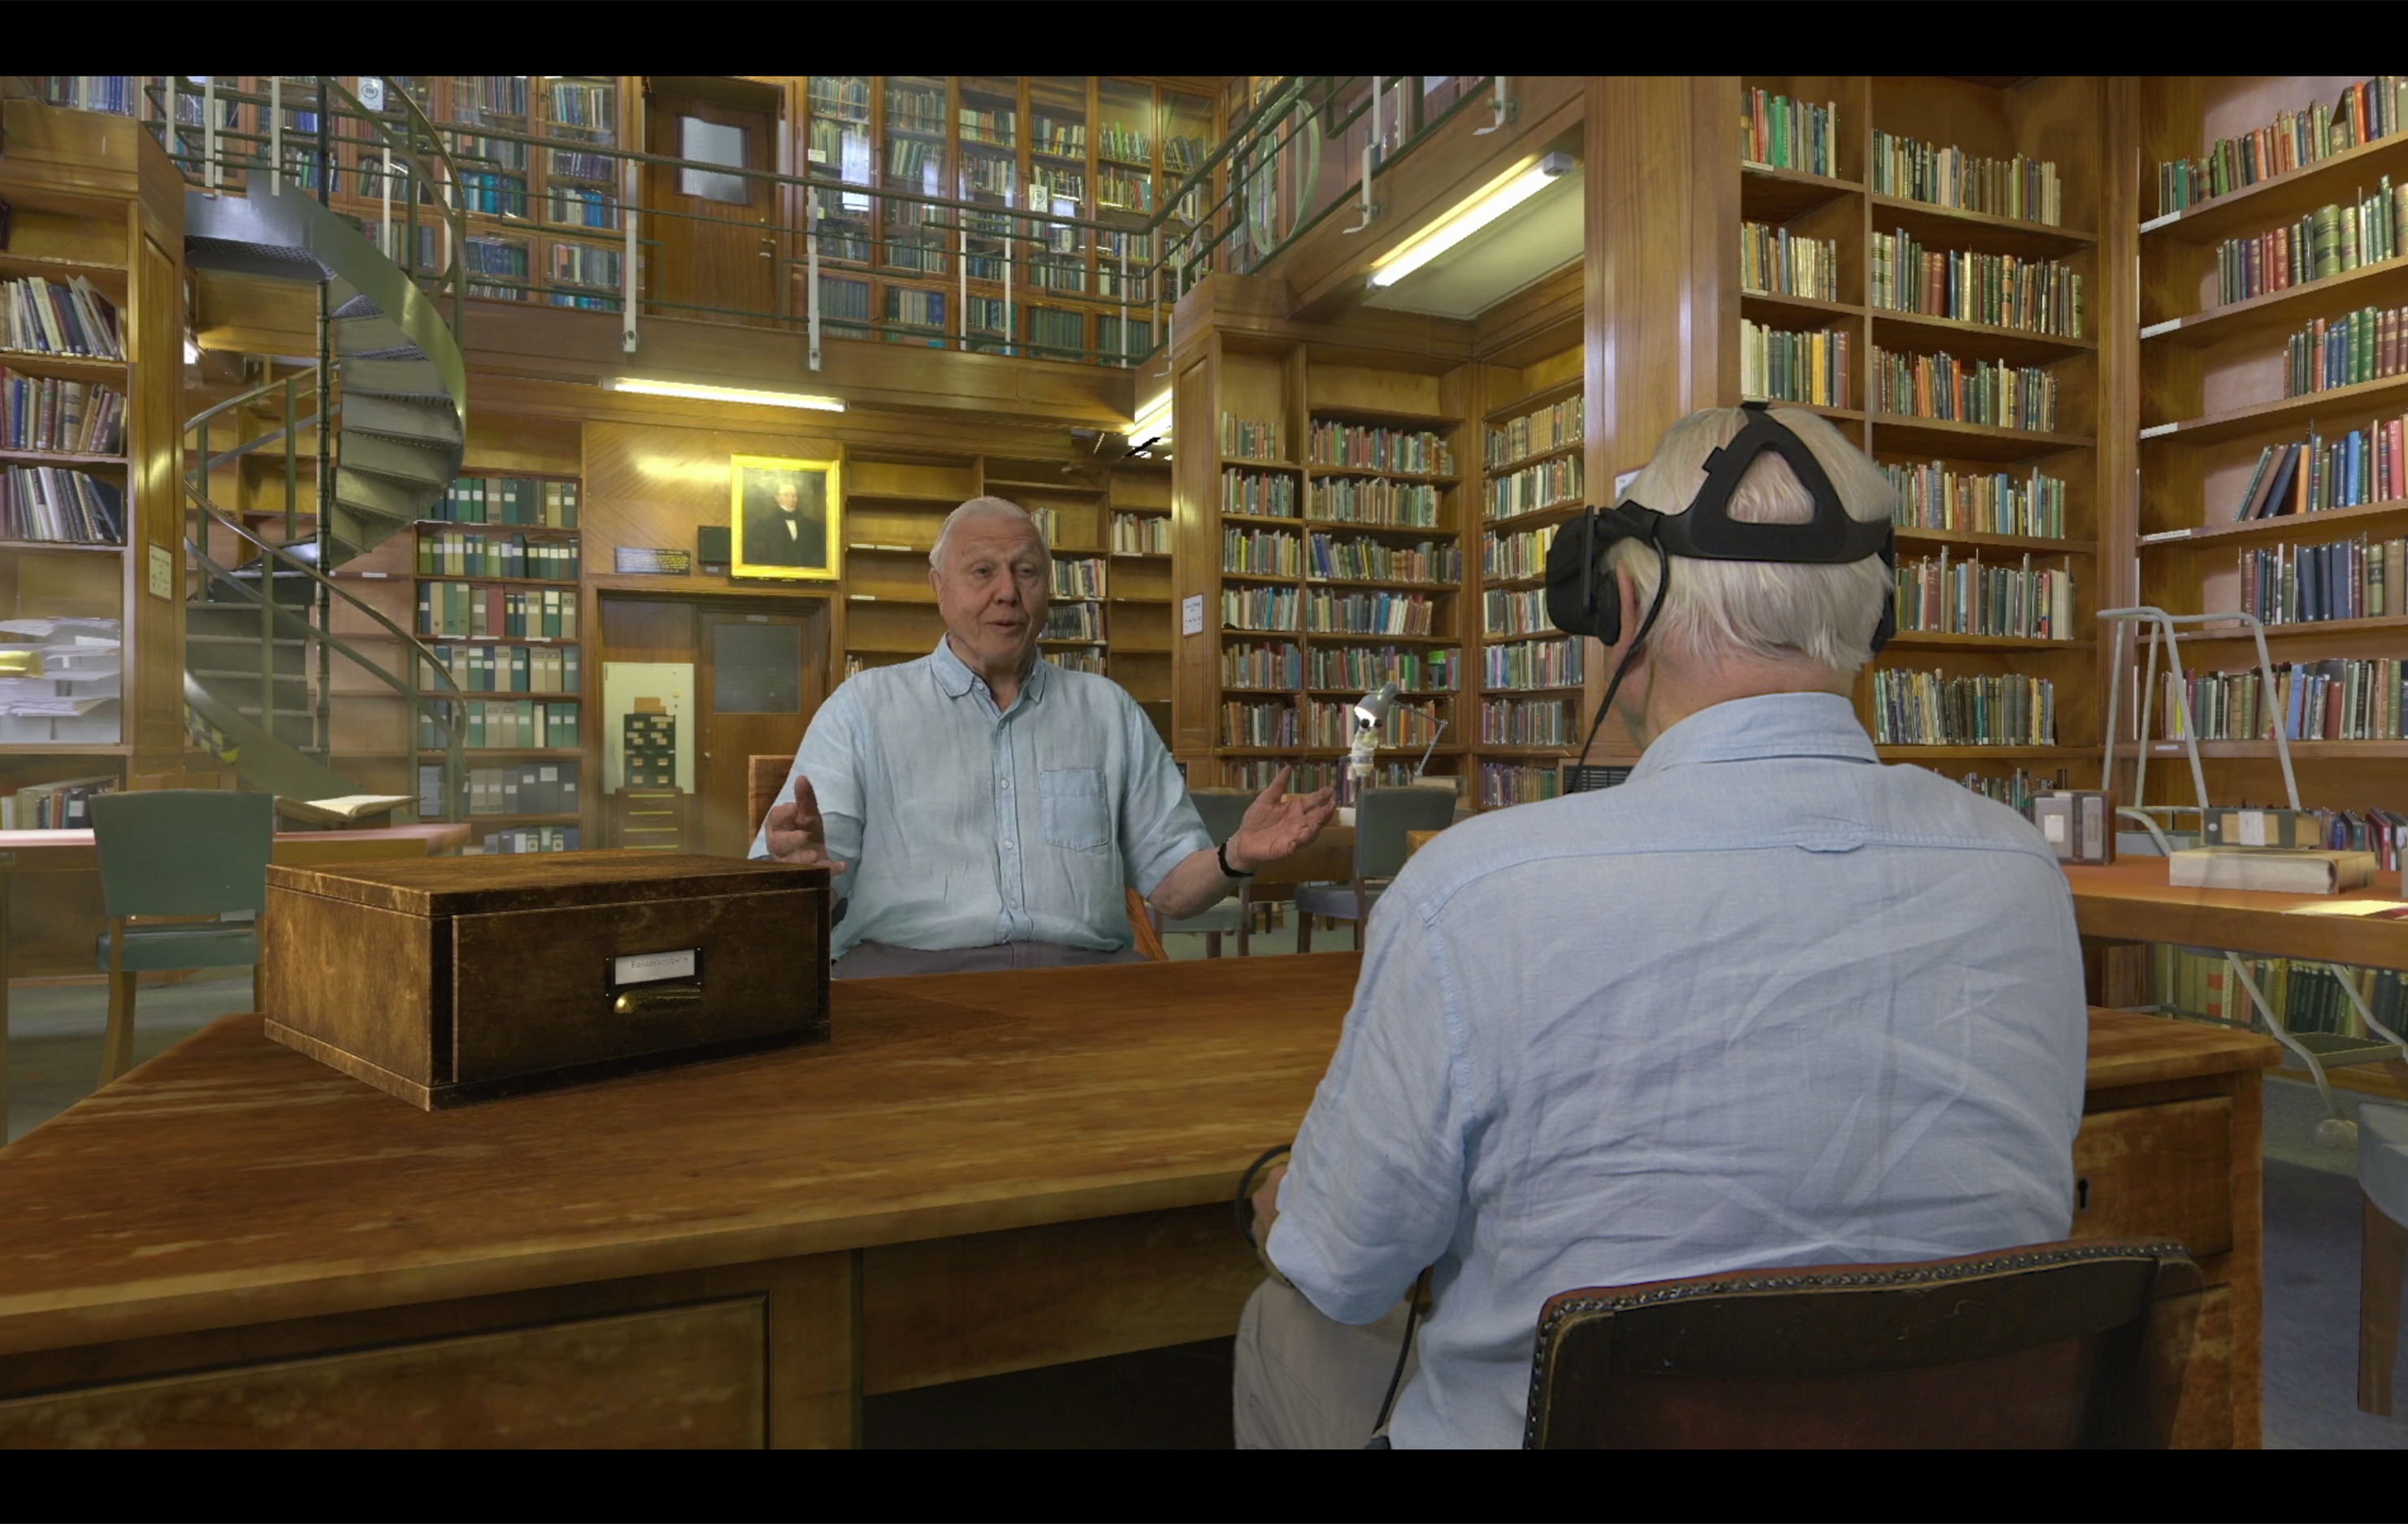 natural history museum vr app air david meets himself